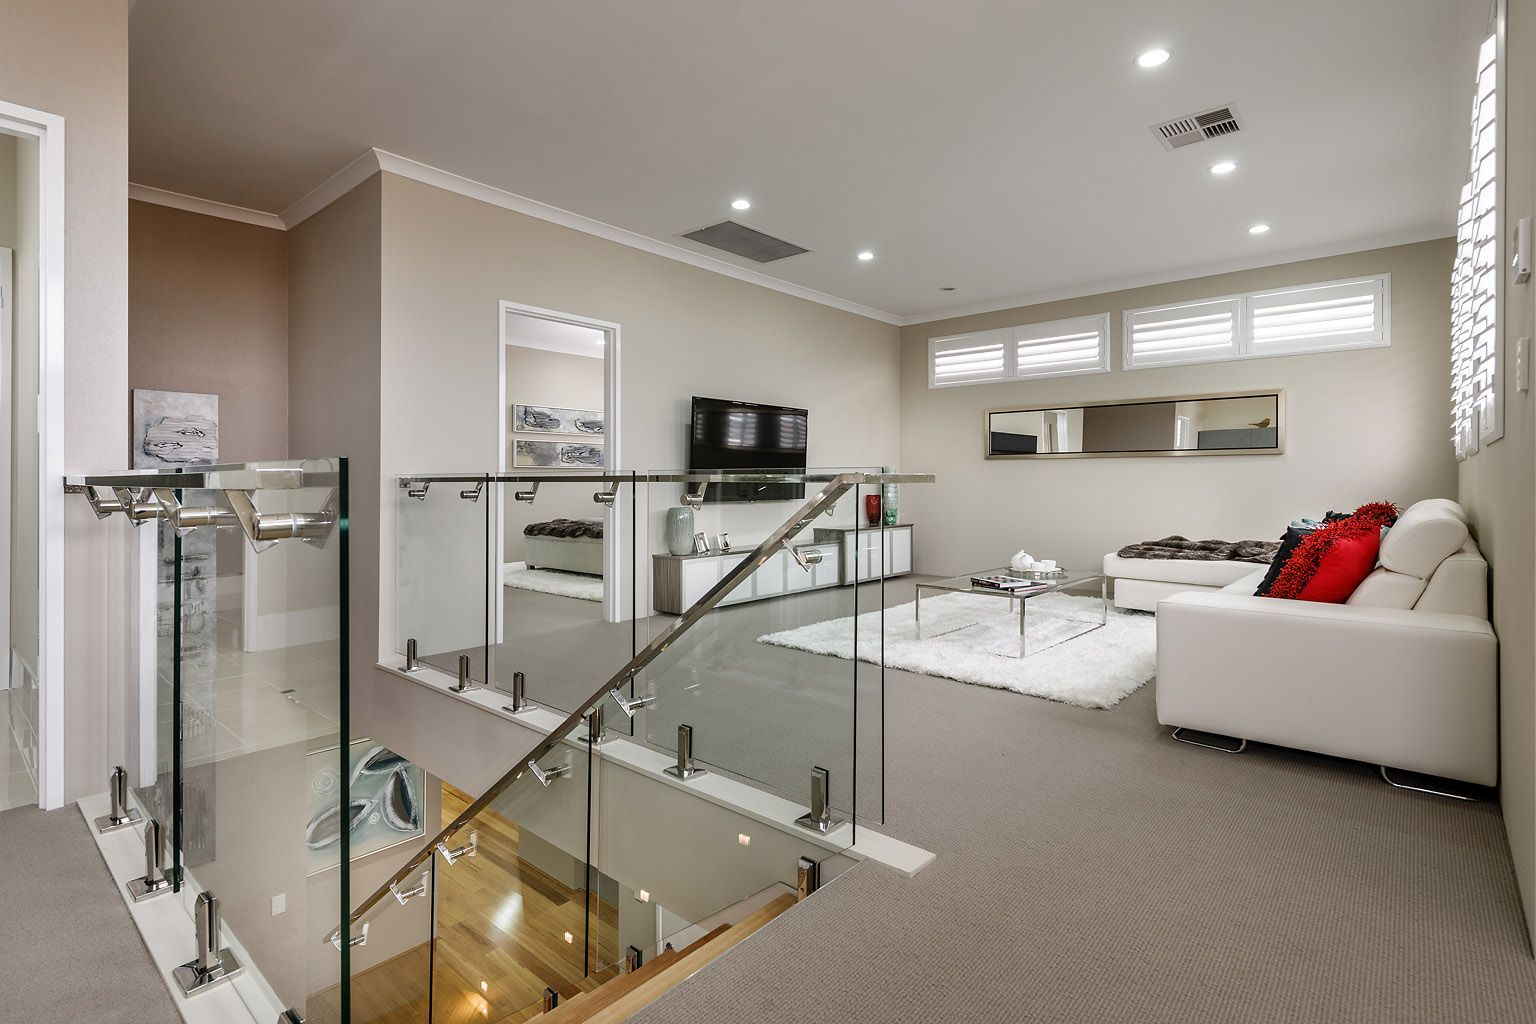 The Appella  Ben Trager Homes Perth Display Home Upstairs - Display home interiors